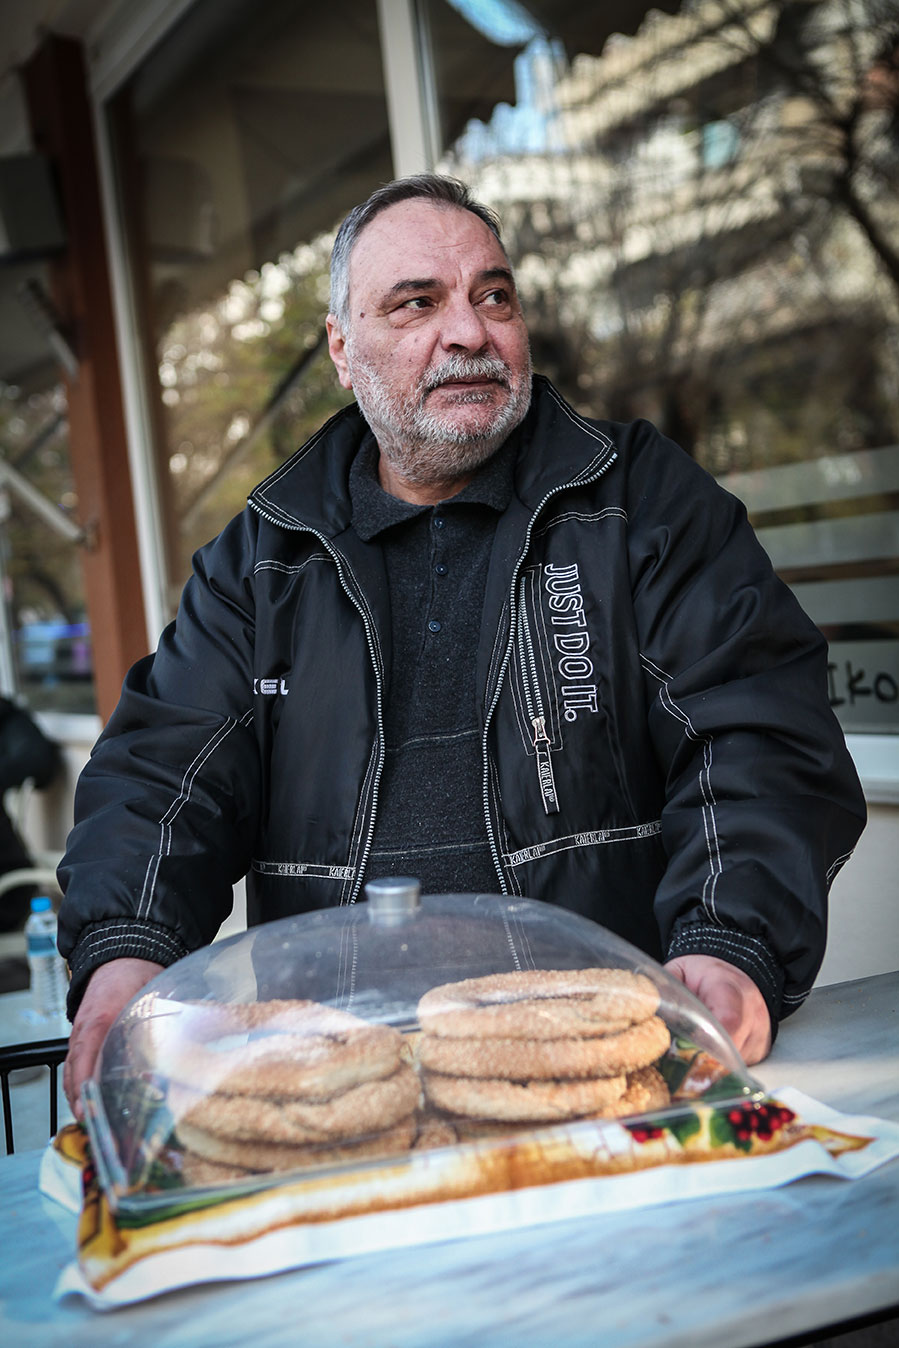 "For over 10 years, Paschalis Batsaris worked as a medical equipment salesman making 3,000–5,000 € per month. In 2012 he found himself unemployed. No longer able to pay his mortgage, he soon lost his home. He currently lives ""here and there, hosted by various friends"" and sells Koulouris (Greek pretzels, a local specialty) on the street to survive. ""When I can make 5–10 € a day, I am very happy""."